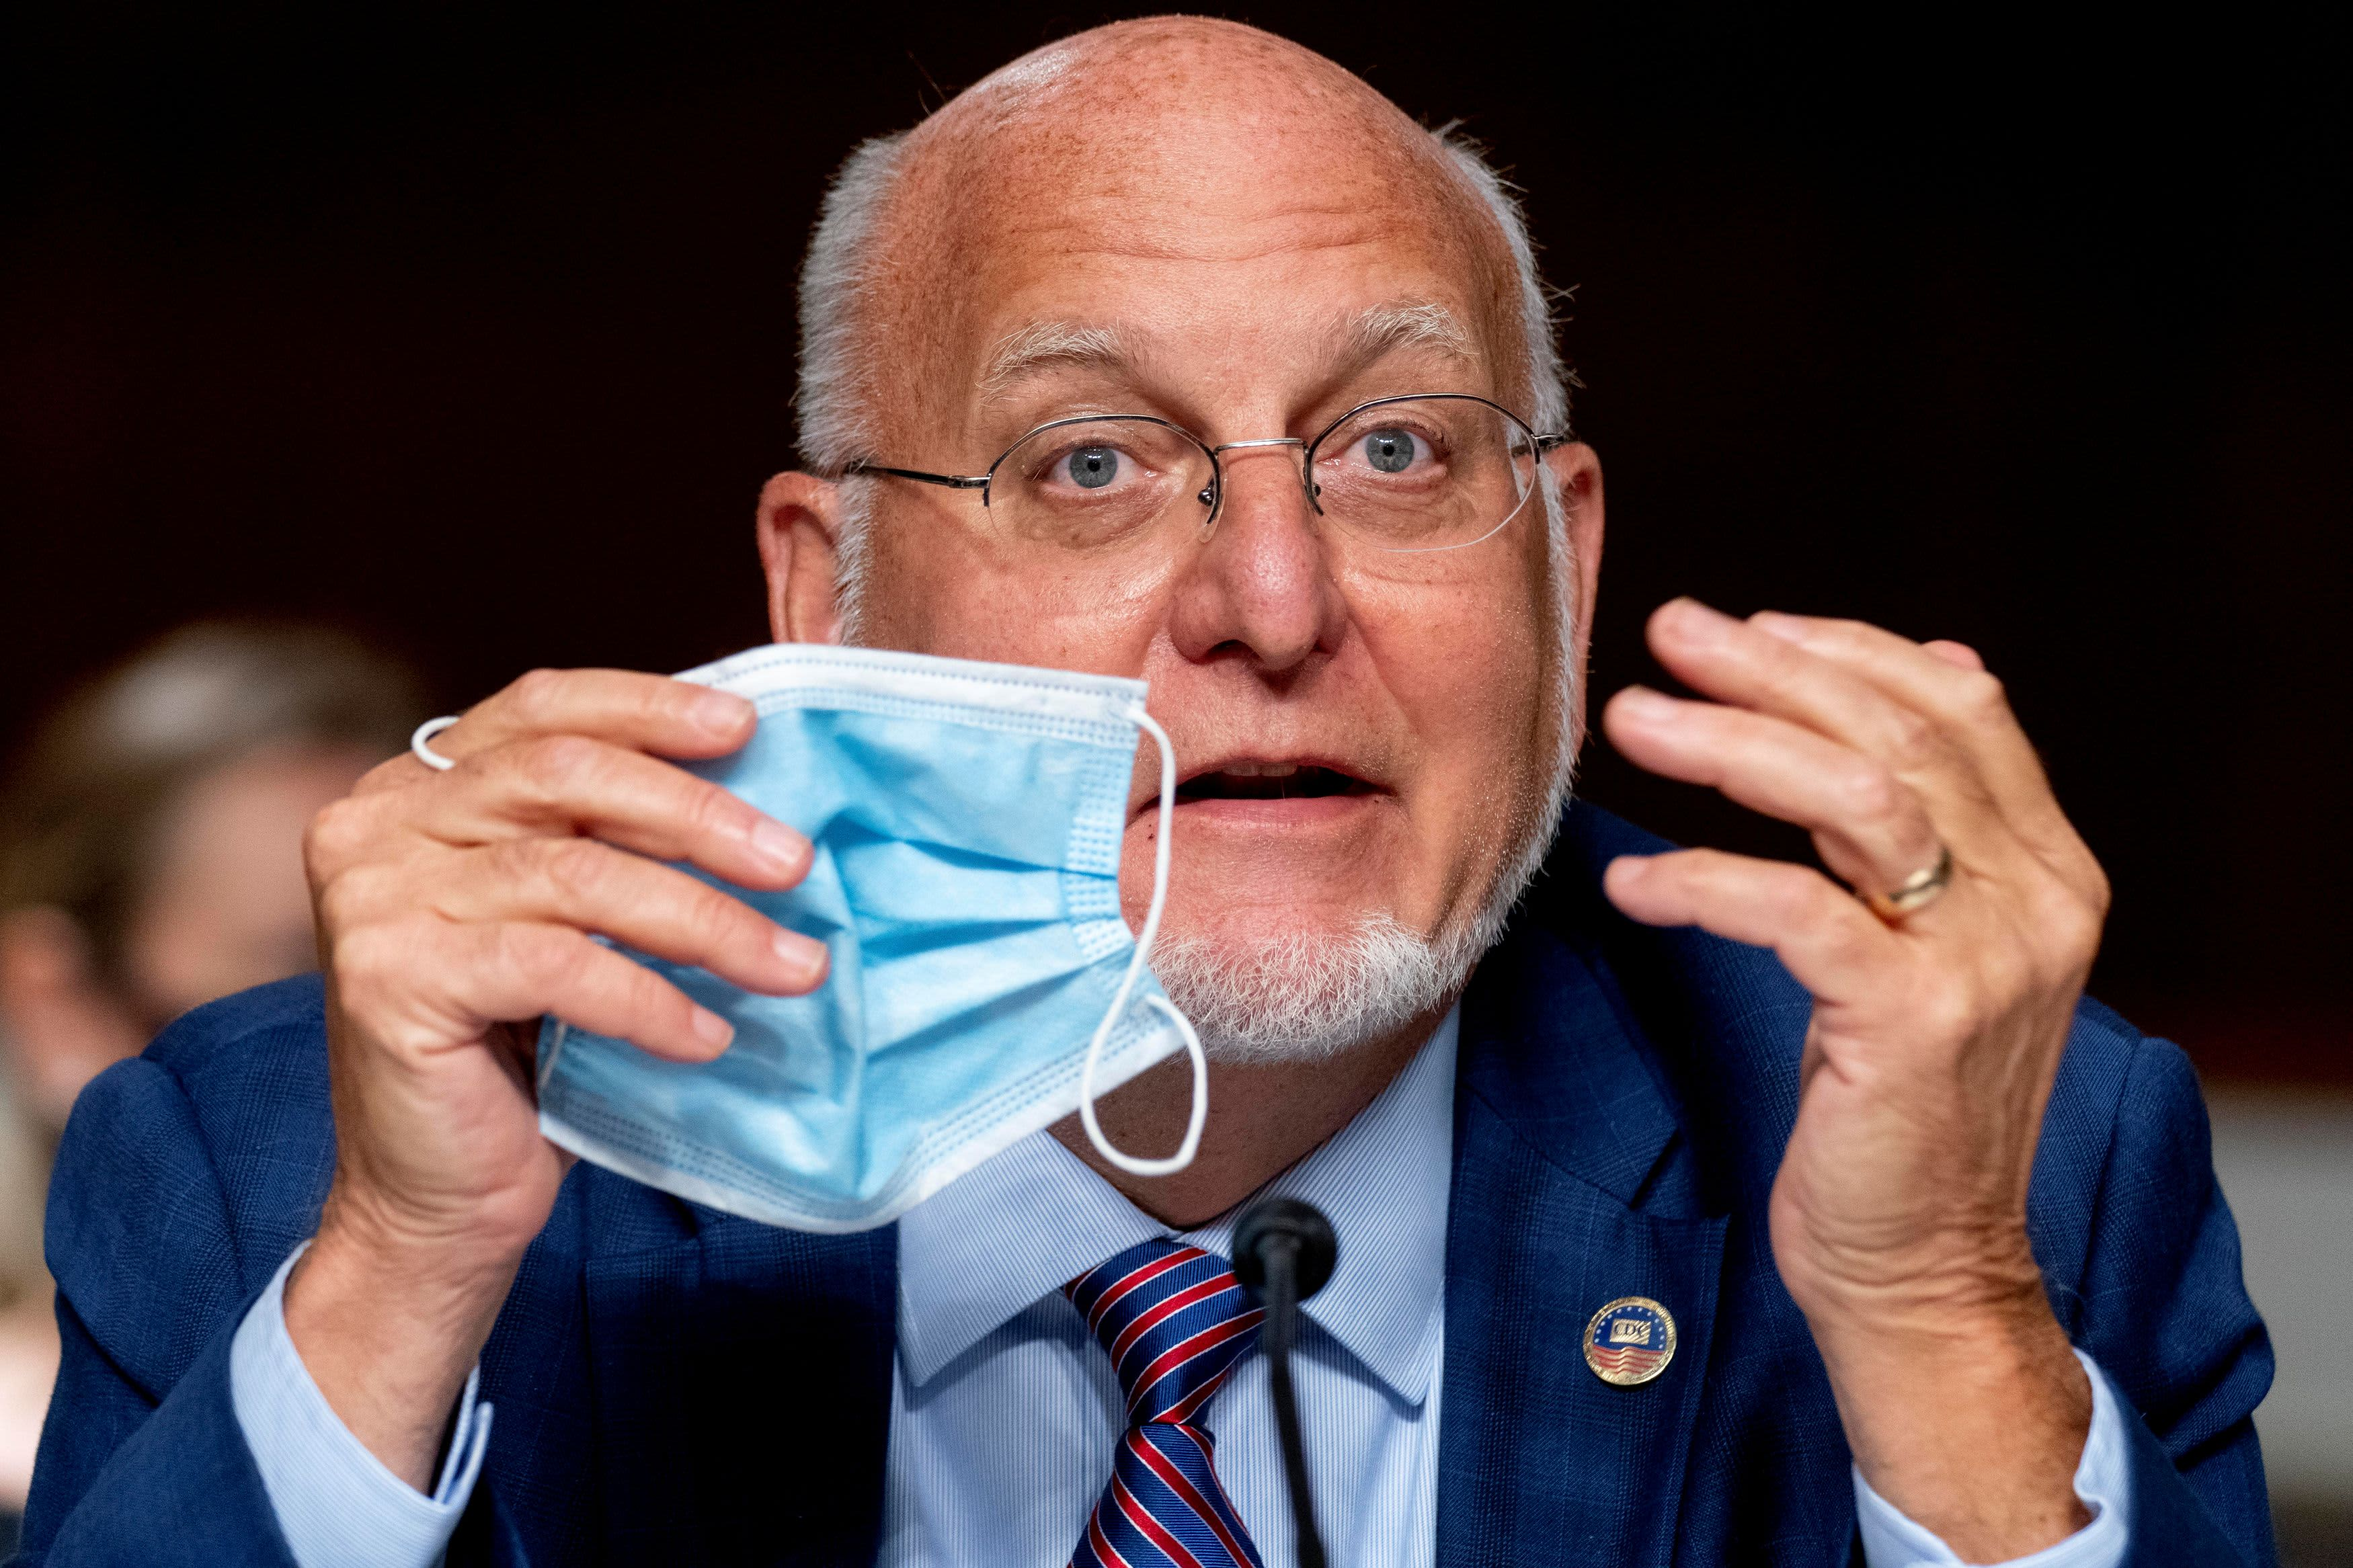 CDC director says face masks may provide more protection than coronavirus vaccine – CNBC